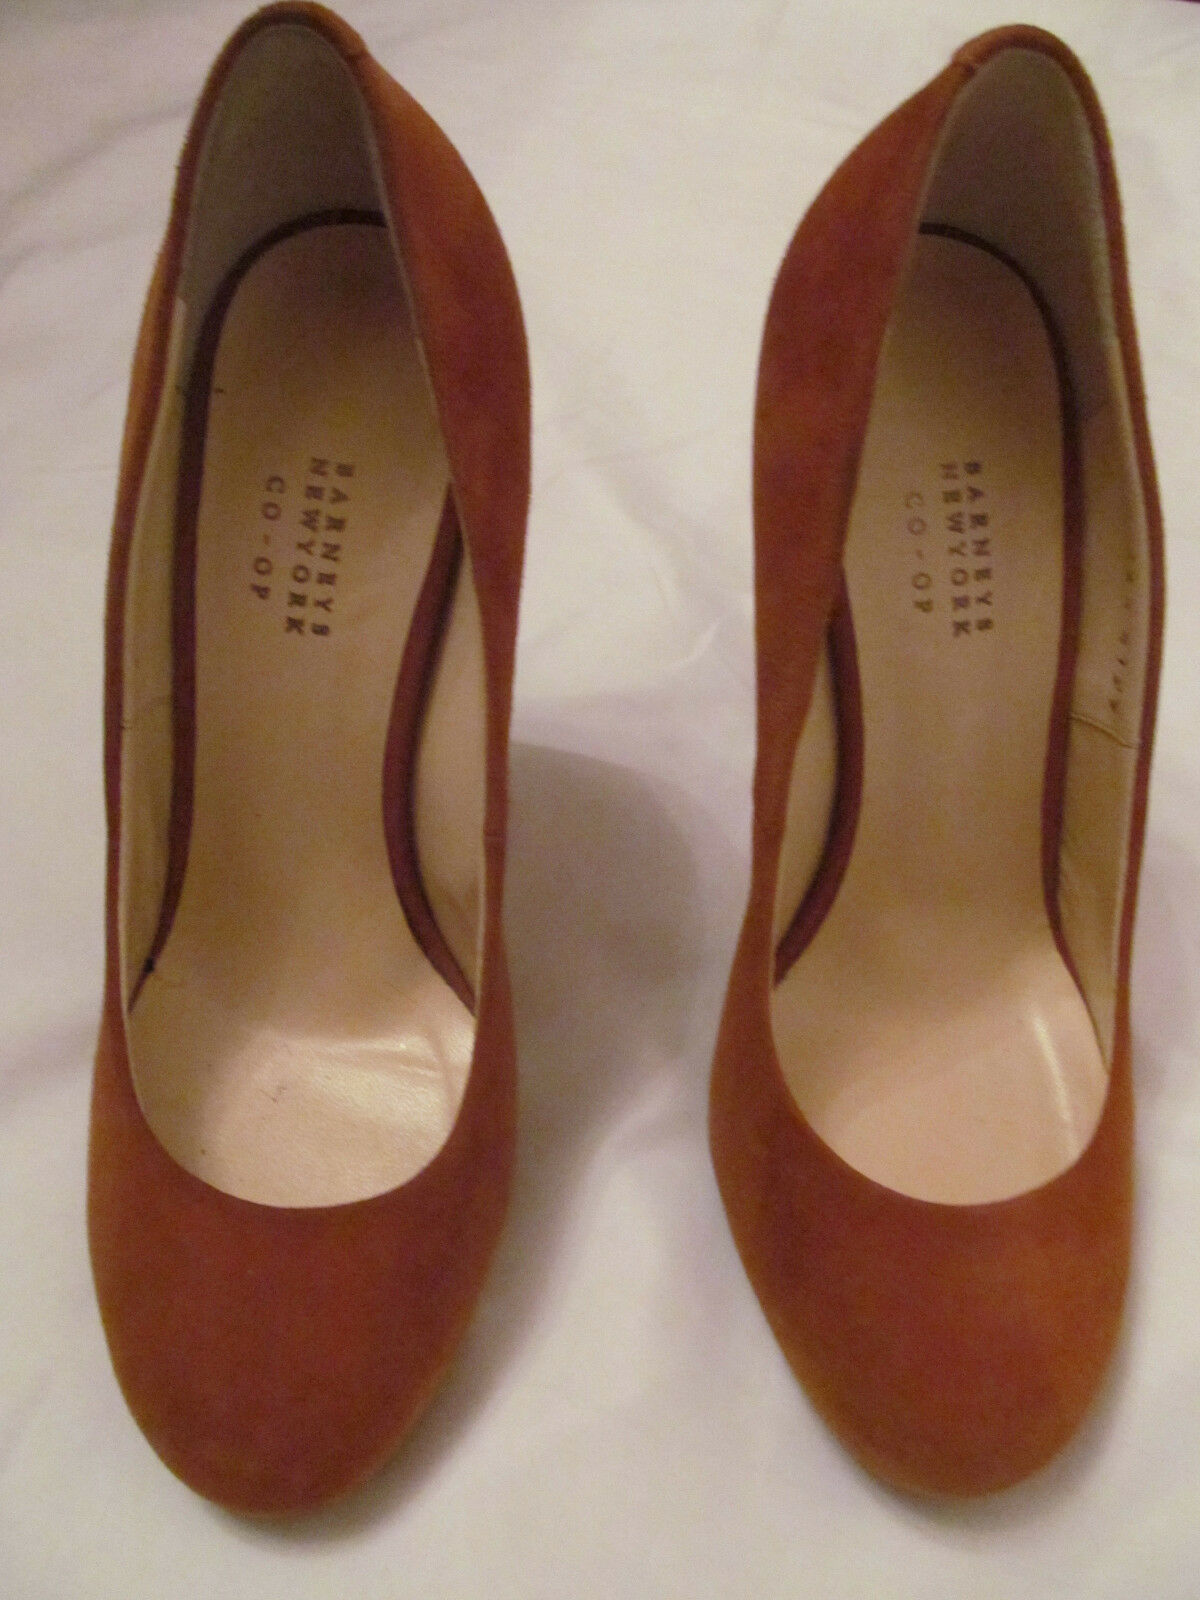 BARNEYS pumps NEW YORK CO OP PUMPKIN suede leather stiletto pumps BARNEYS shoes 36.5 WORN ONCE 62eb75